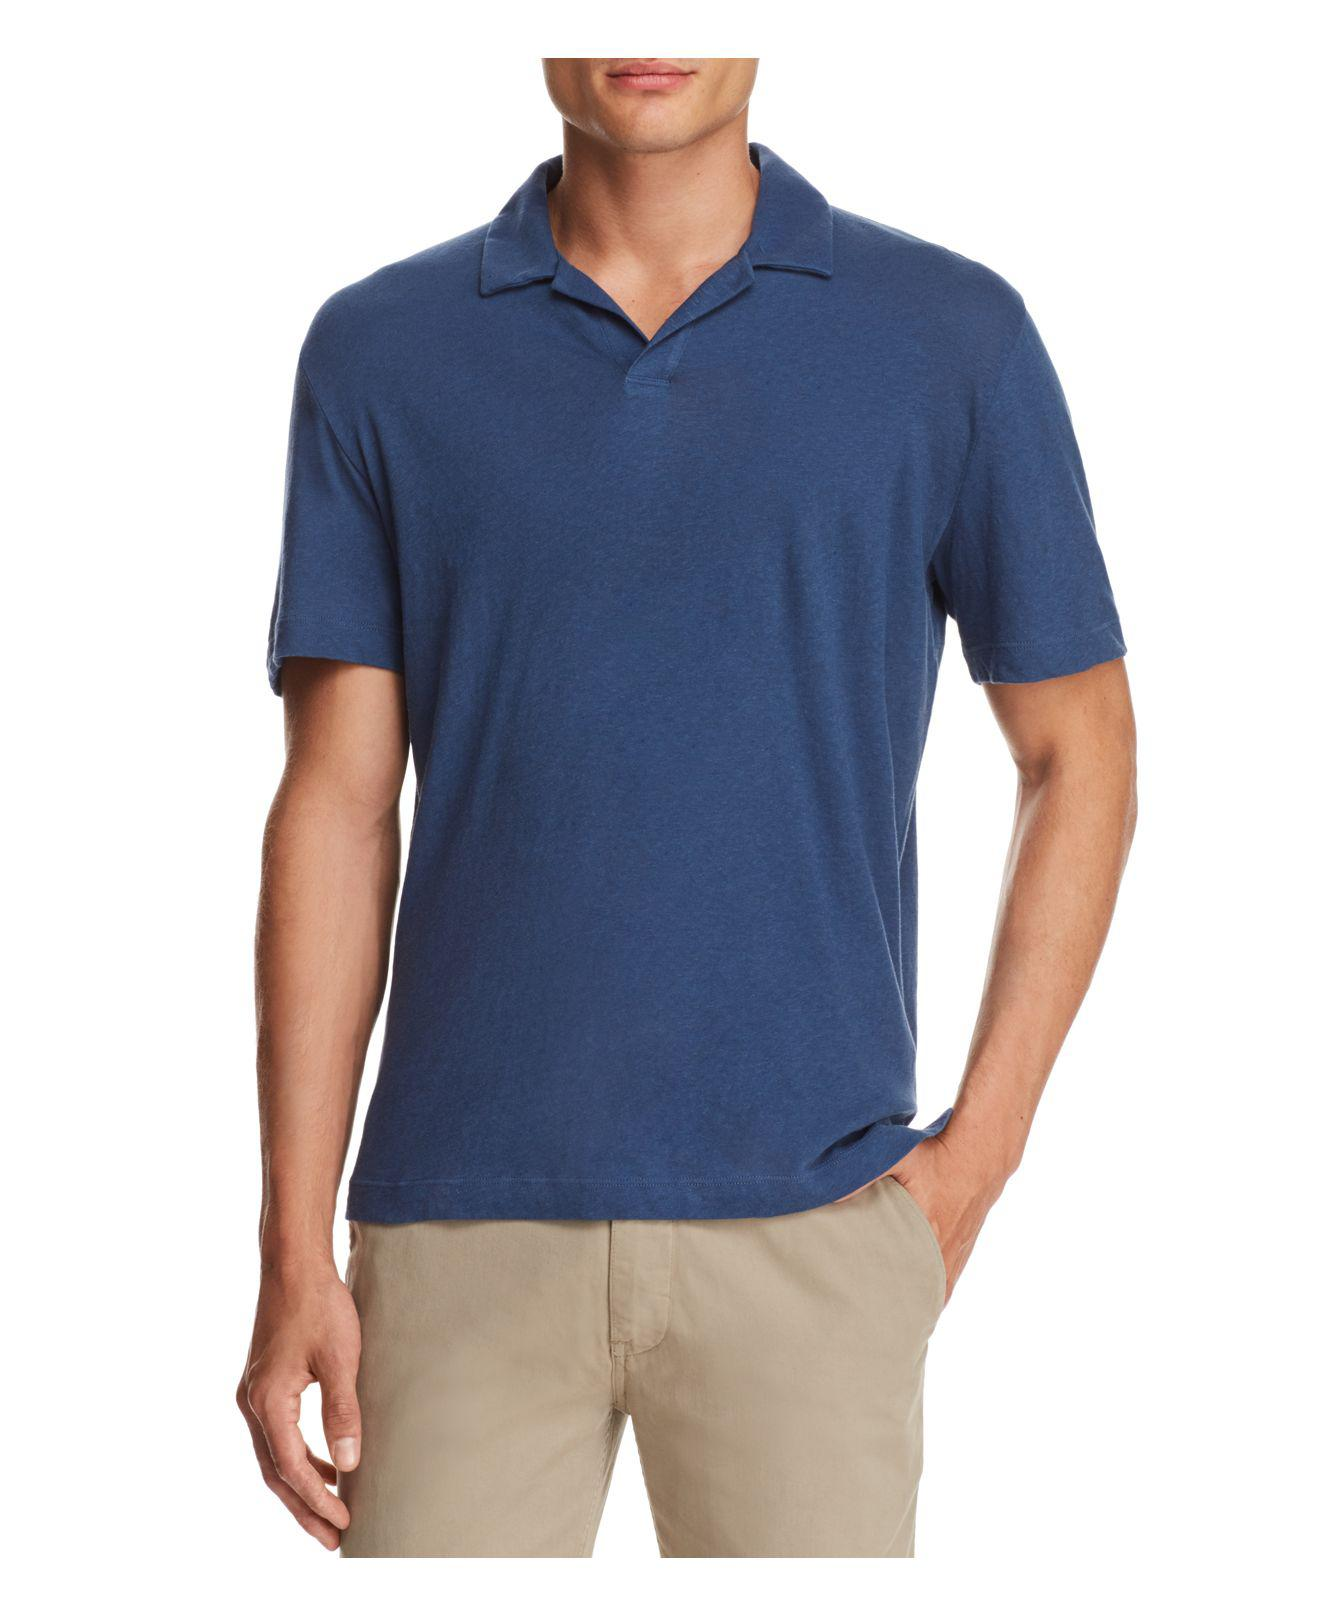 Theory Open Collar Short Sleeve Polo Shirt In Blue For Men